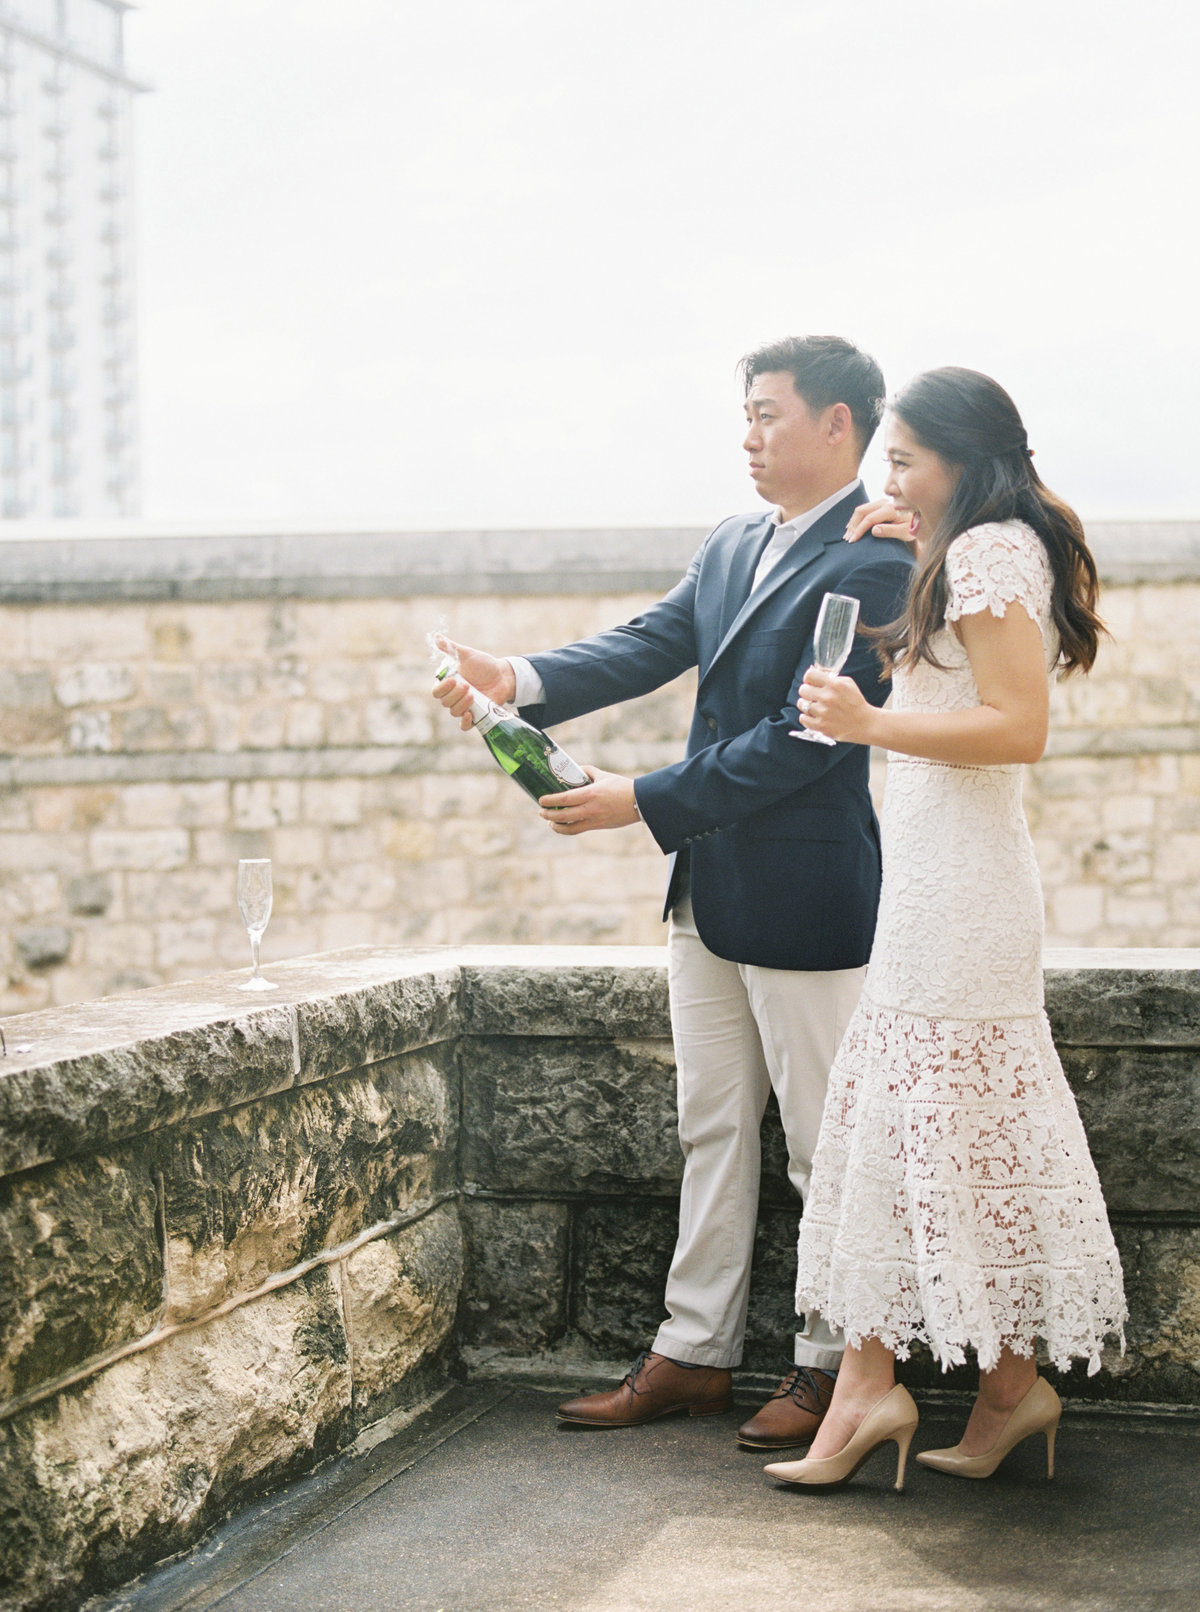 Couple popping champagne - engagement photos- Chateau Bellevue